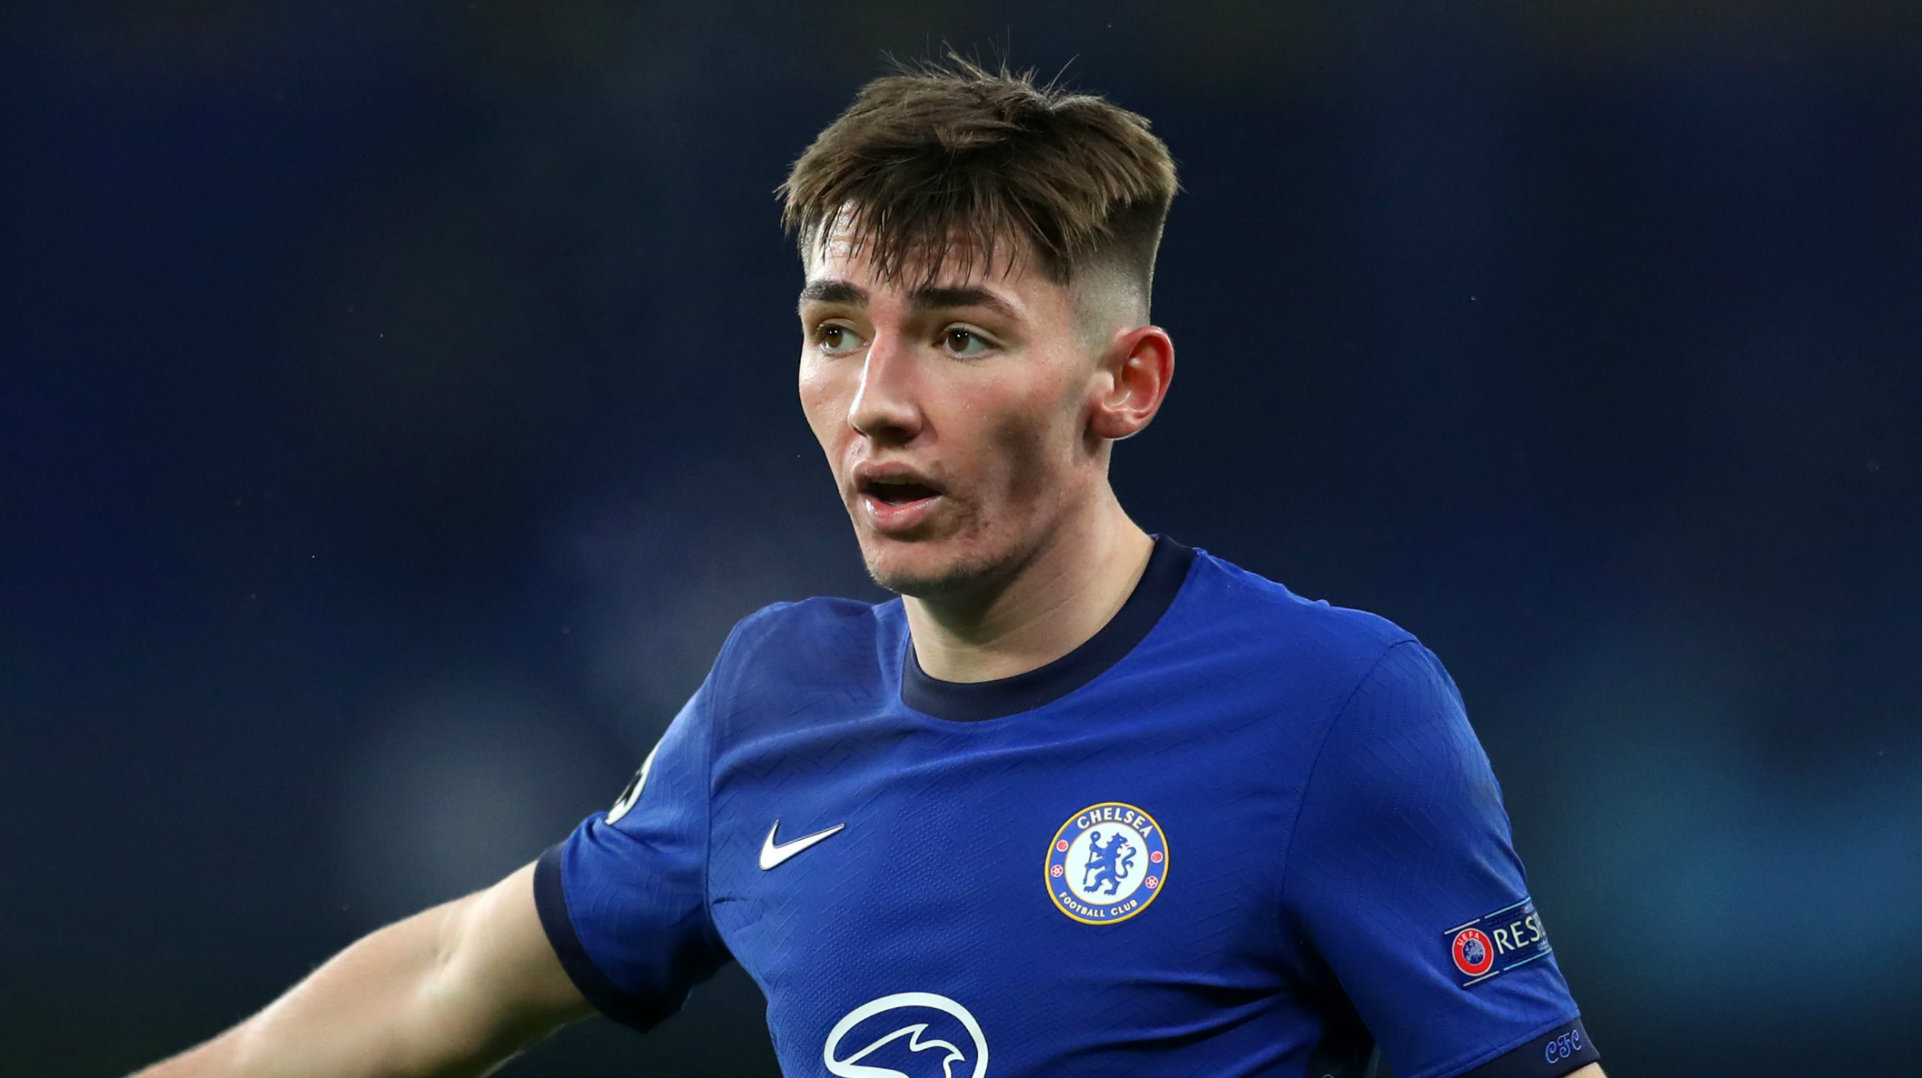 'Gilmour is living his dream' - Tuchel explains why he didn't consider loaning out Chelsea starlet